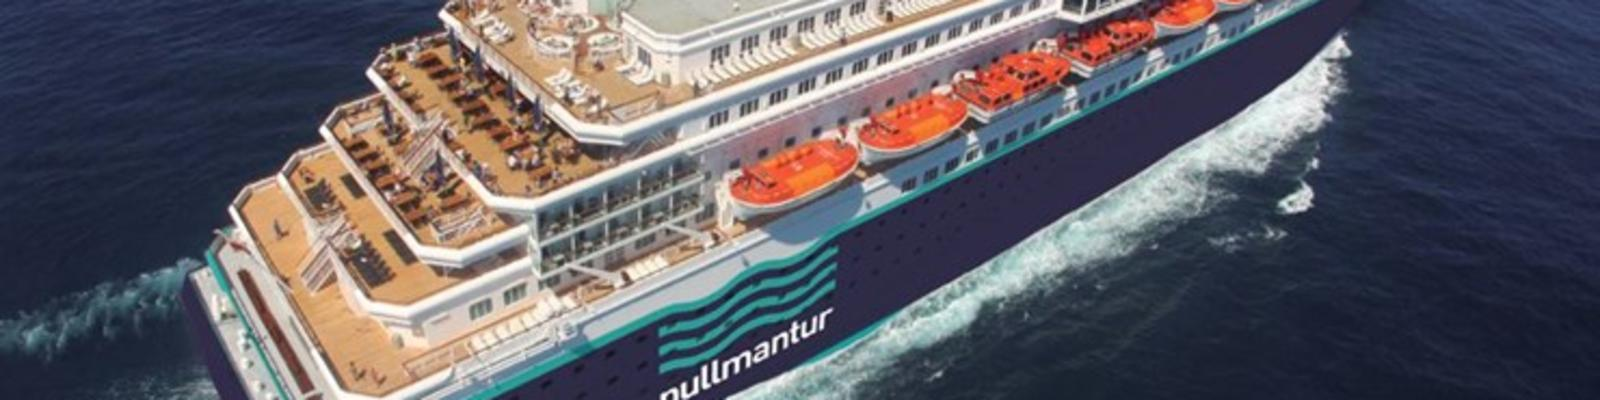 Pullmantur Zenith Cruise Ship Review Photos Departure Ports On - Zenith cruise ship itinerary